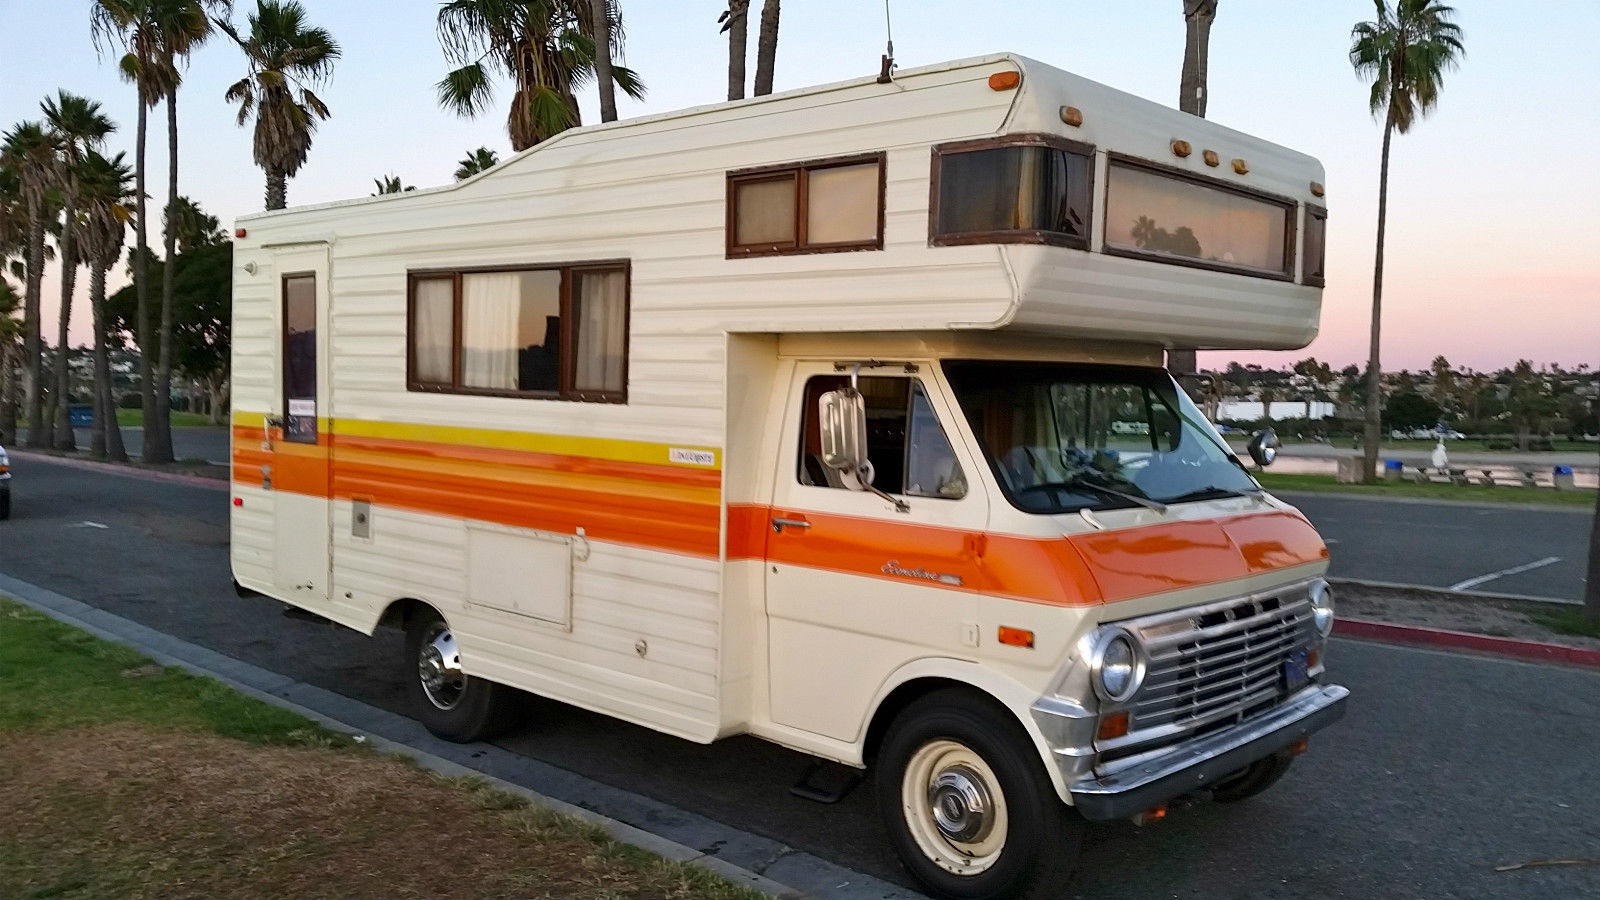 Ultra Rare This 1970 Ford Motorhome Has An